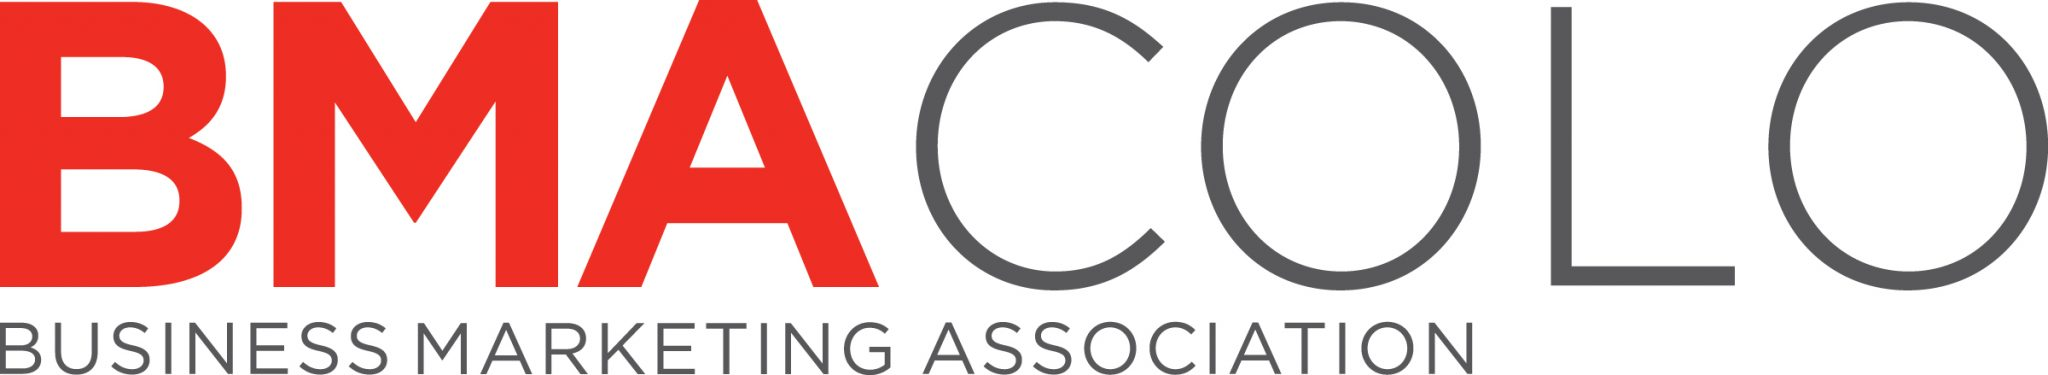 Business Marketing Association Colorado